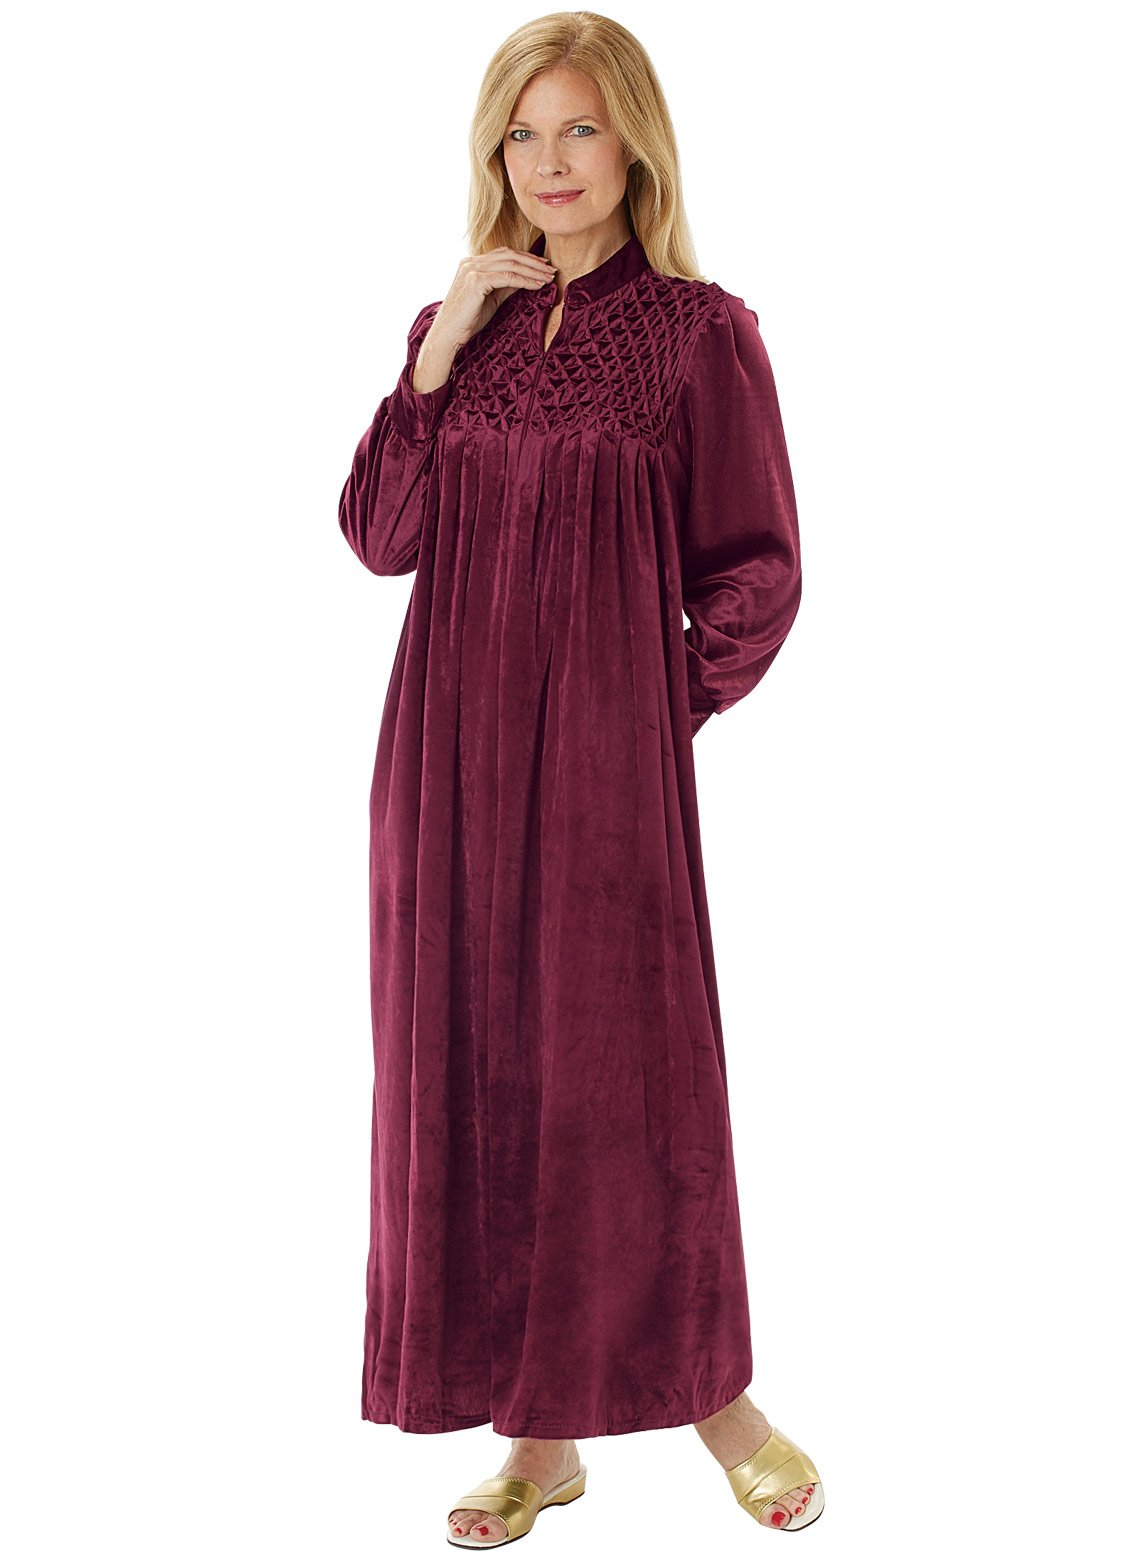 Carol Wright Gifts Long Zip-Front Robe, Burgundy, Size Extra Large (3X)